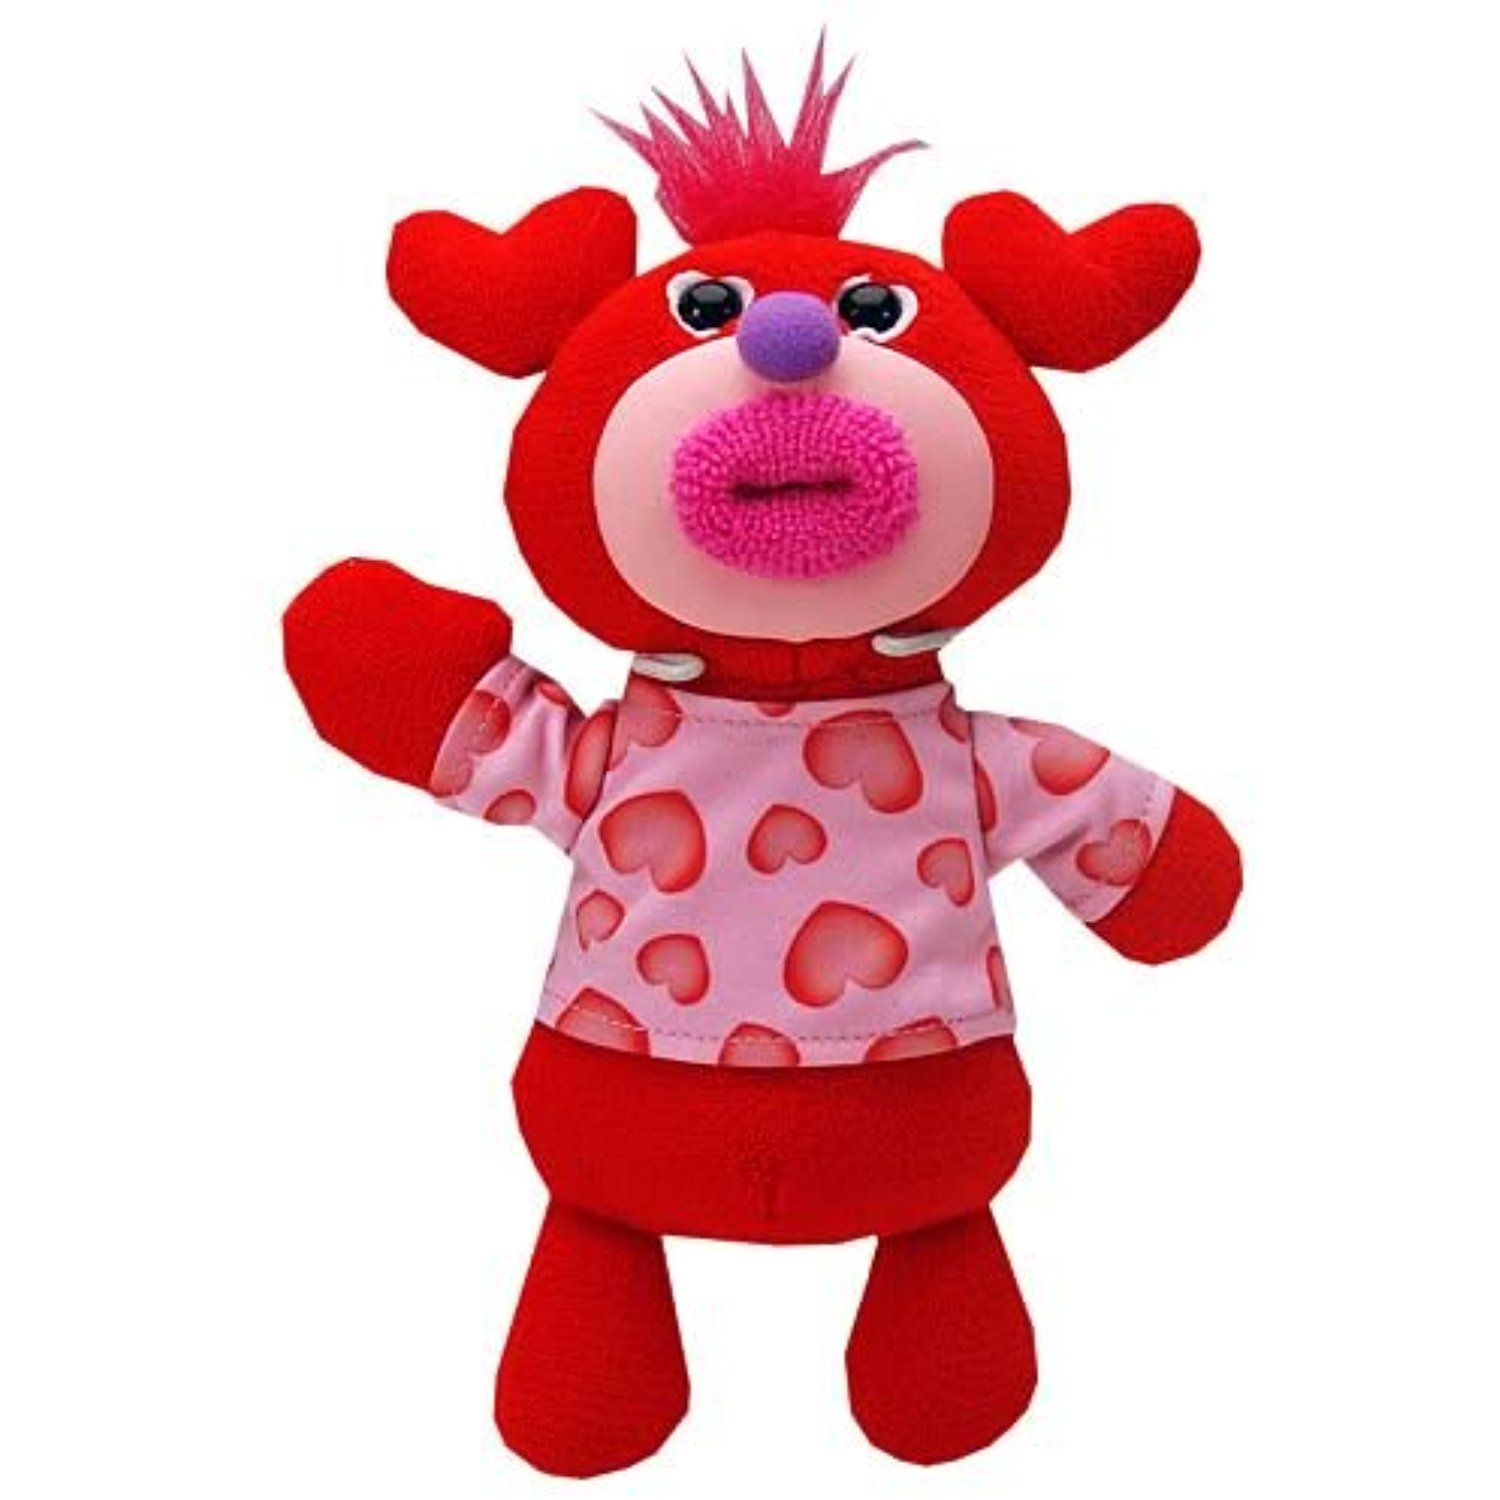 Singamajigs Plush Doll Valentines Day Figure Red With